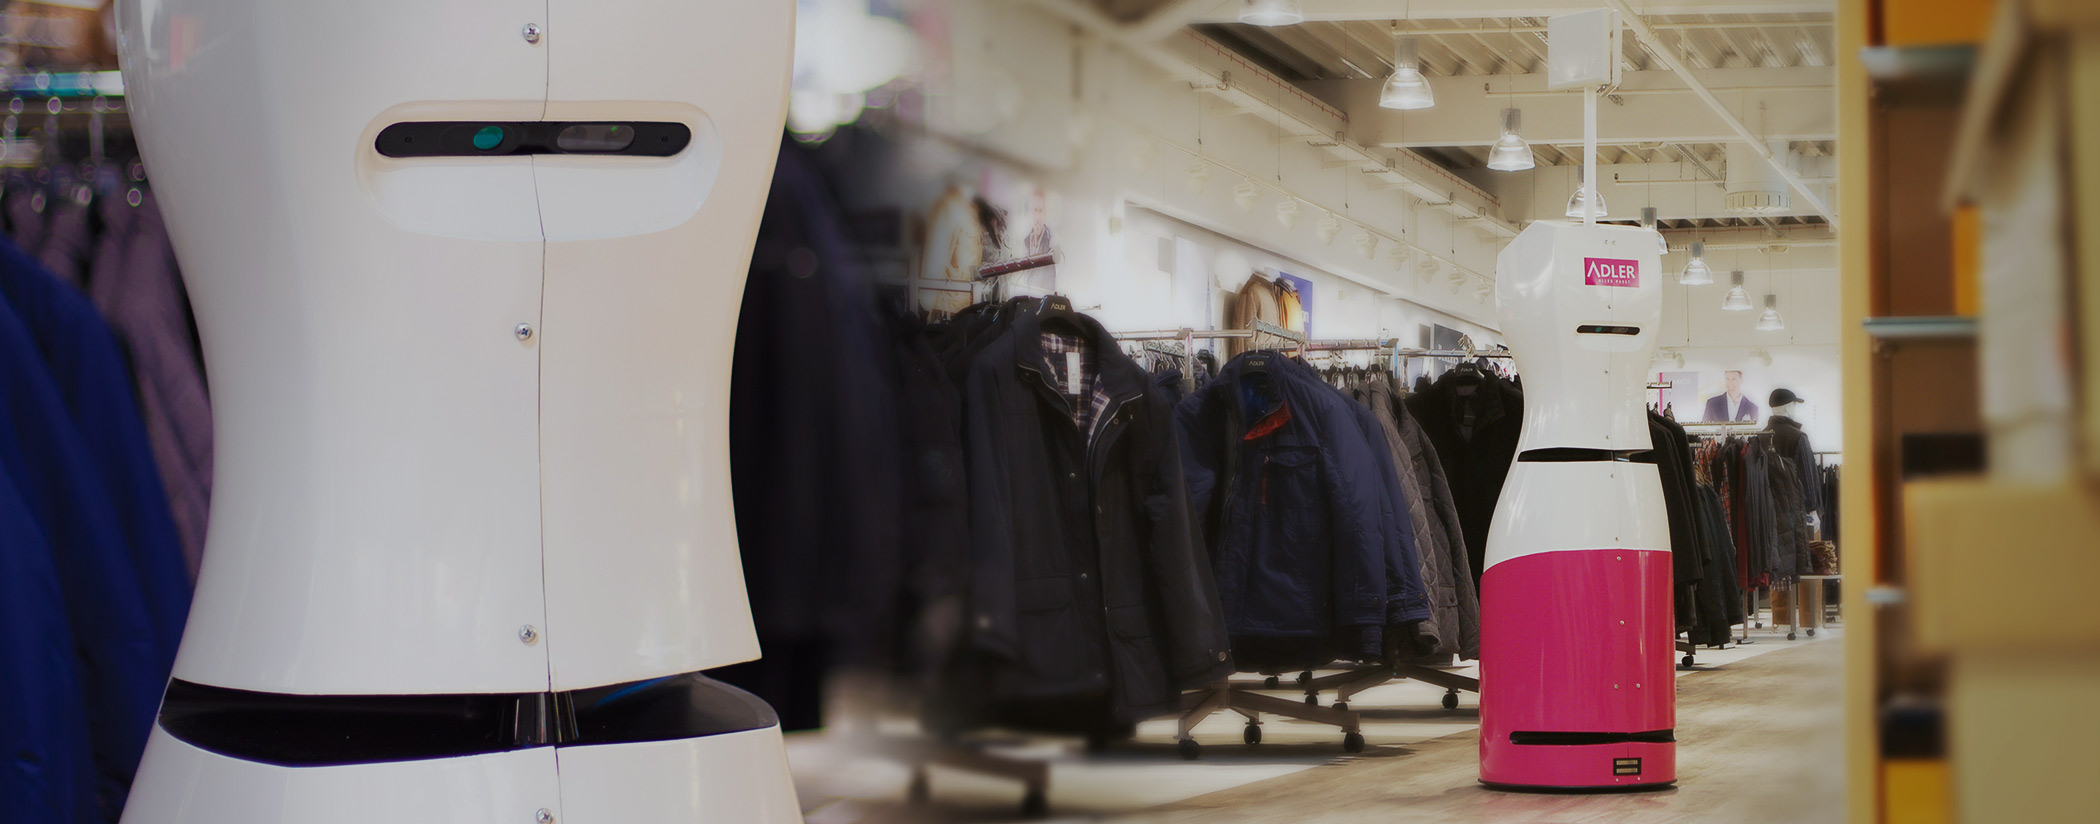 RFID robot Tory in a clothing store